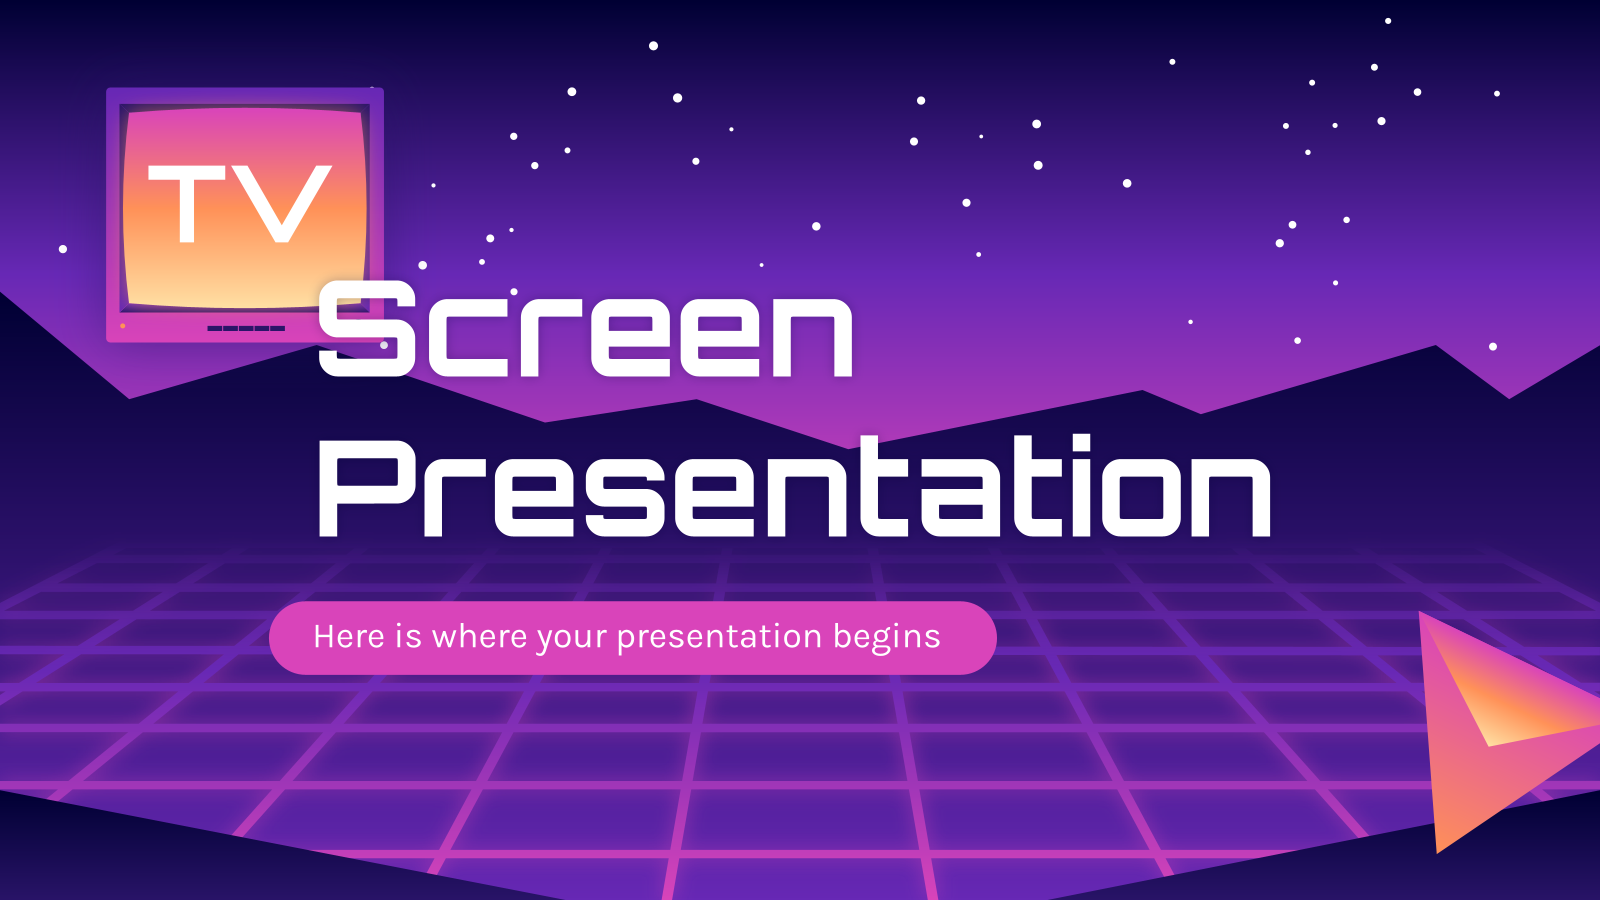 TV screen presentation presentation template